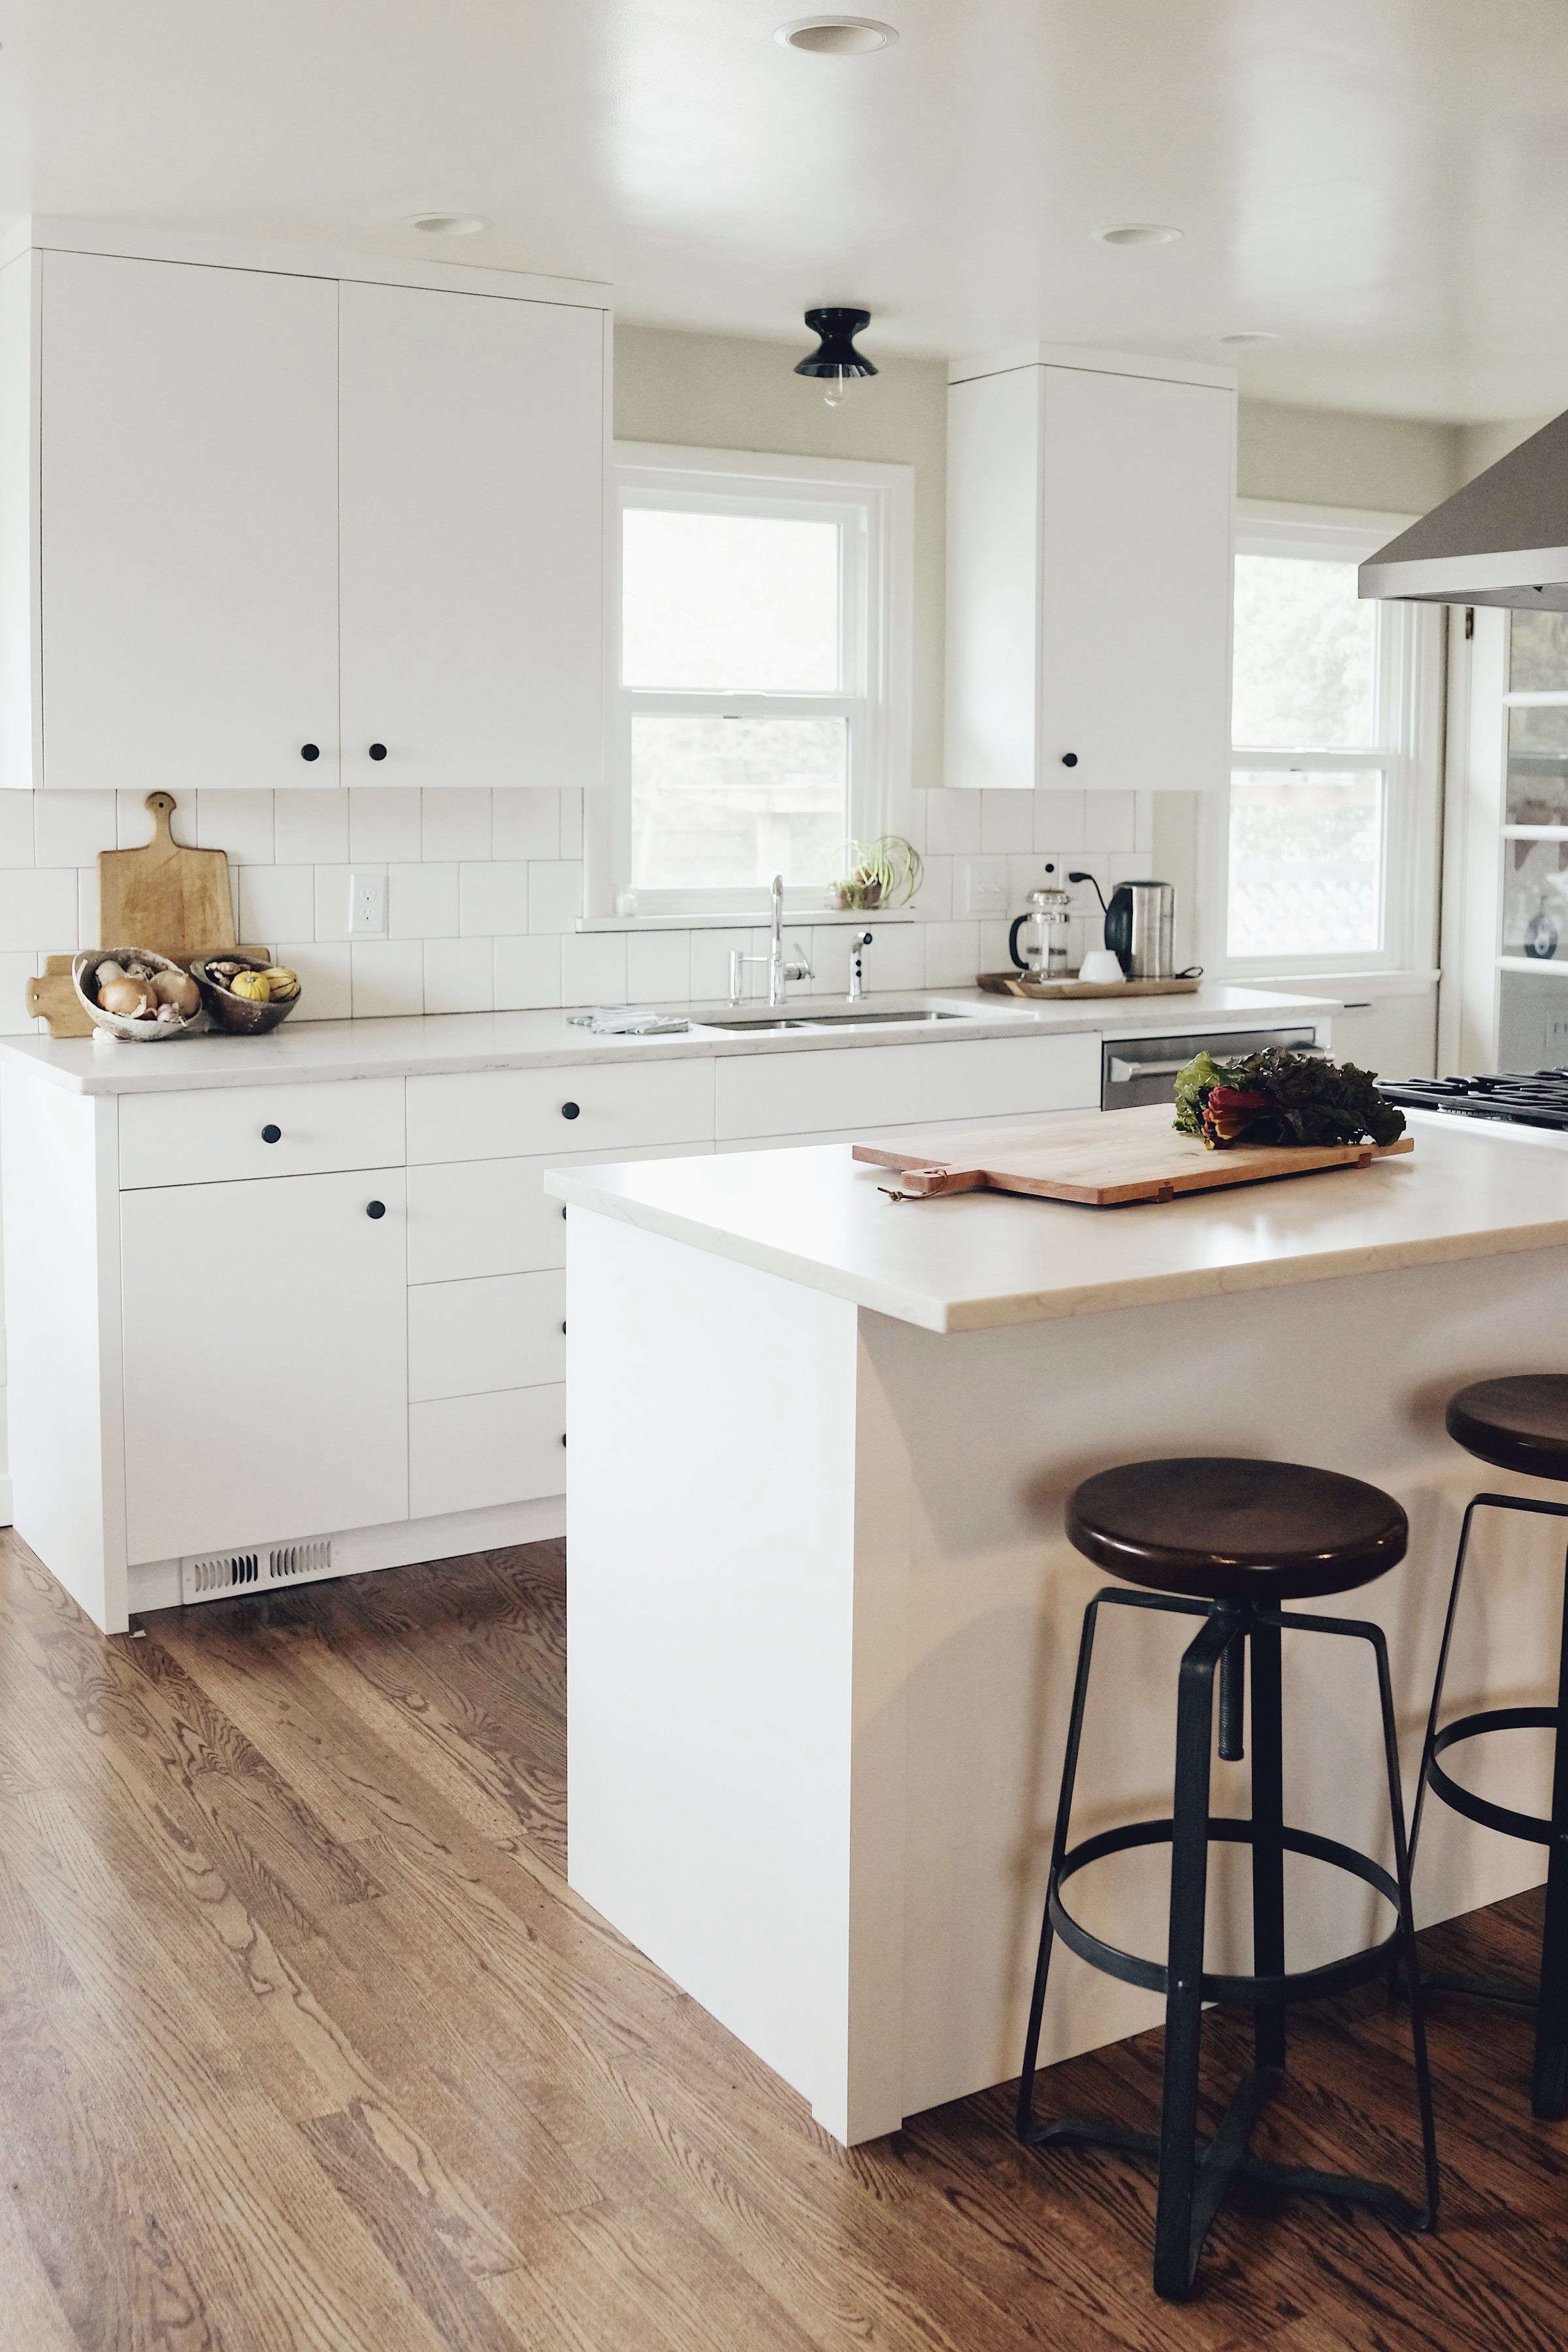 Kitchen Of The Week A Family Kitchen In Seattle Budget Edition - Family-kitchen-design